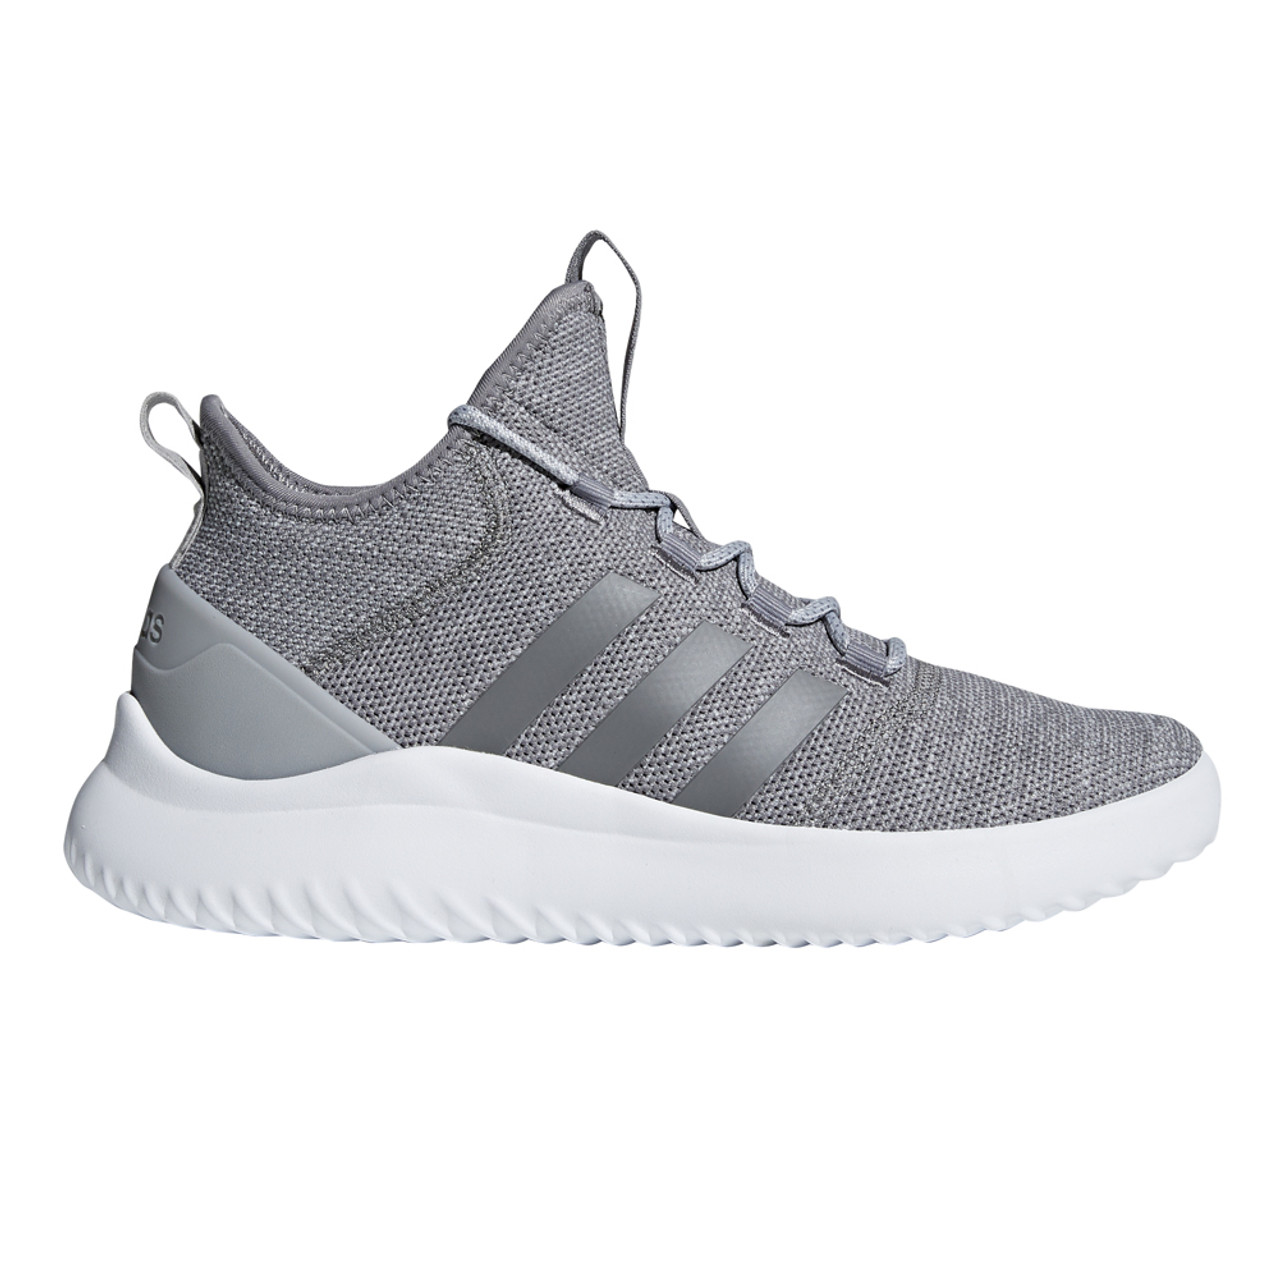 brand new 2b8f0 71825 Adidas Men s Cloudfoam Ultimate Bball Shoe Grey White - Shop now    Shoolu.com